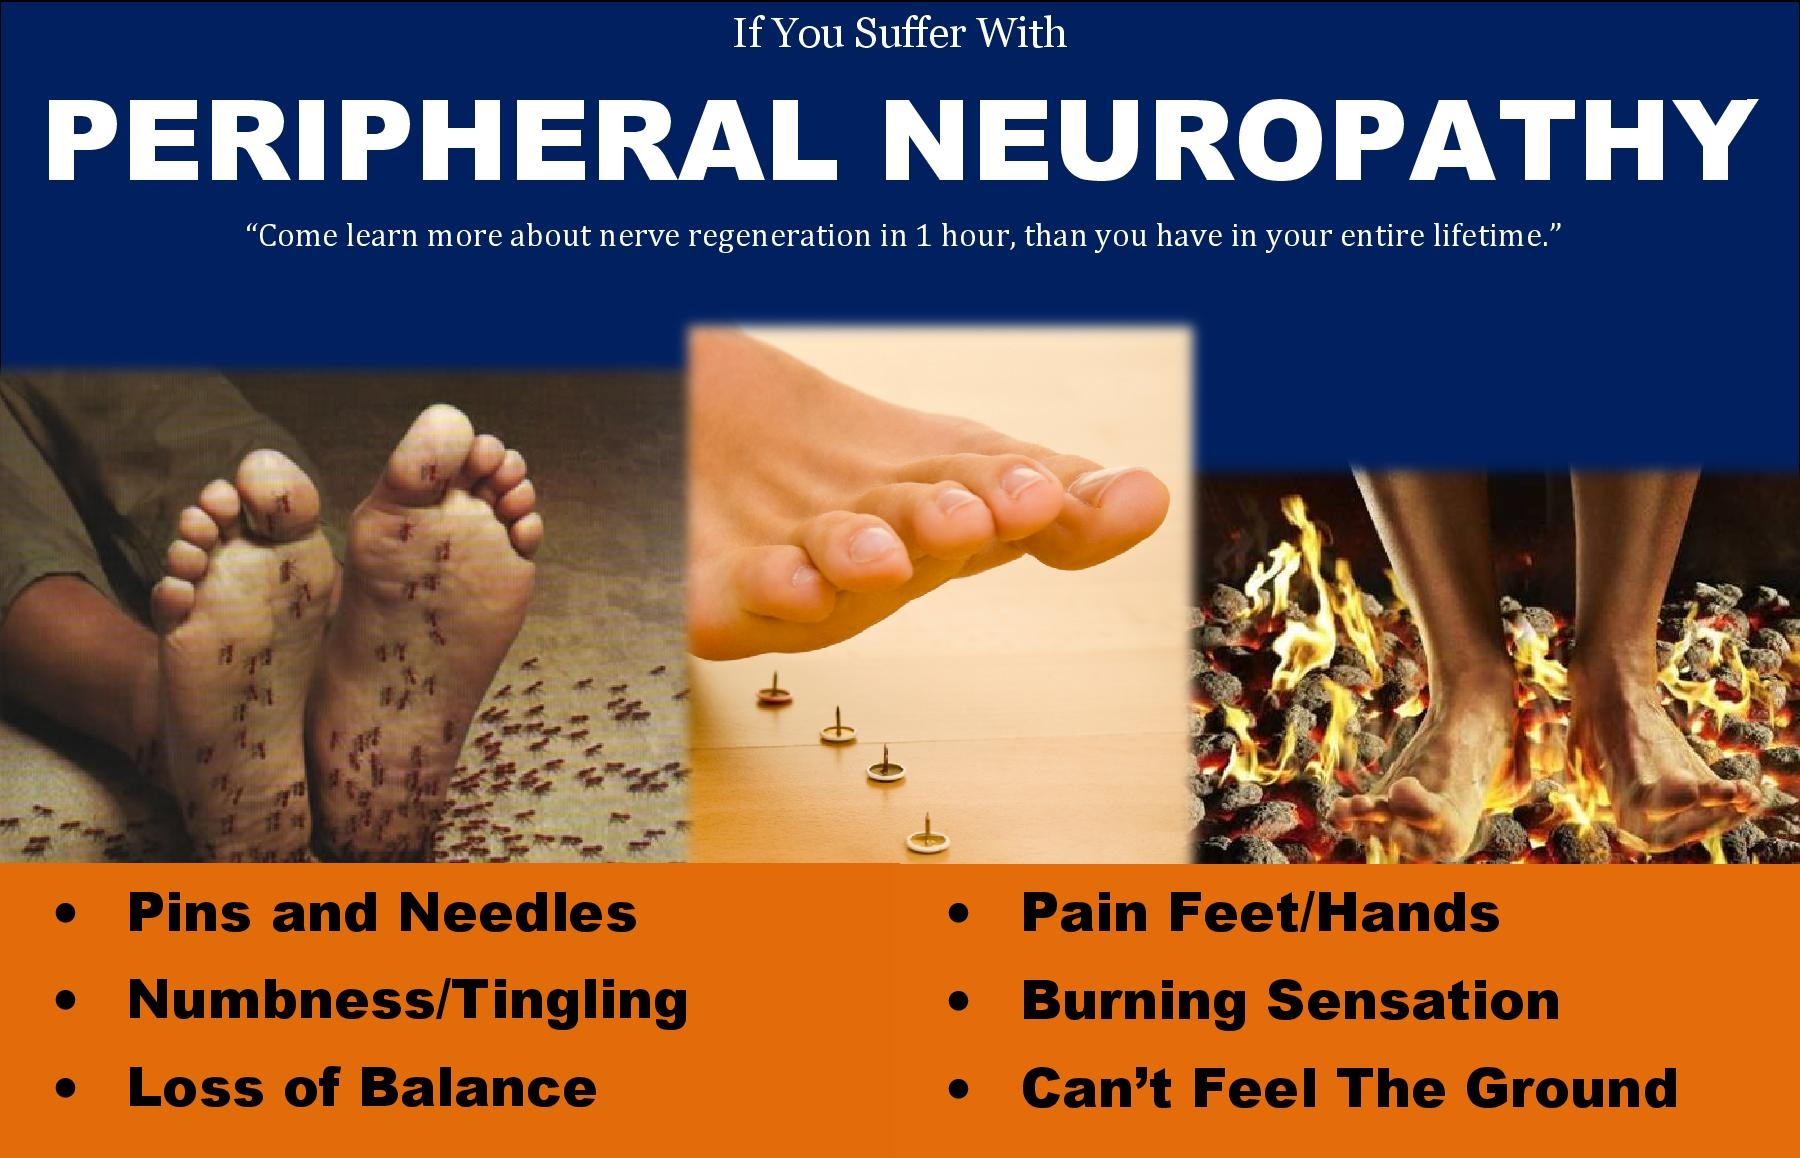 diabetes type 2 with peripheral neuropathy | diabetes🔥 | the secret of nature diabetes type 2 with peripheral neuropathy,the real cause of diabetes⭐️⭐️⭐️⭐️⭐️ help today.